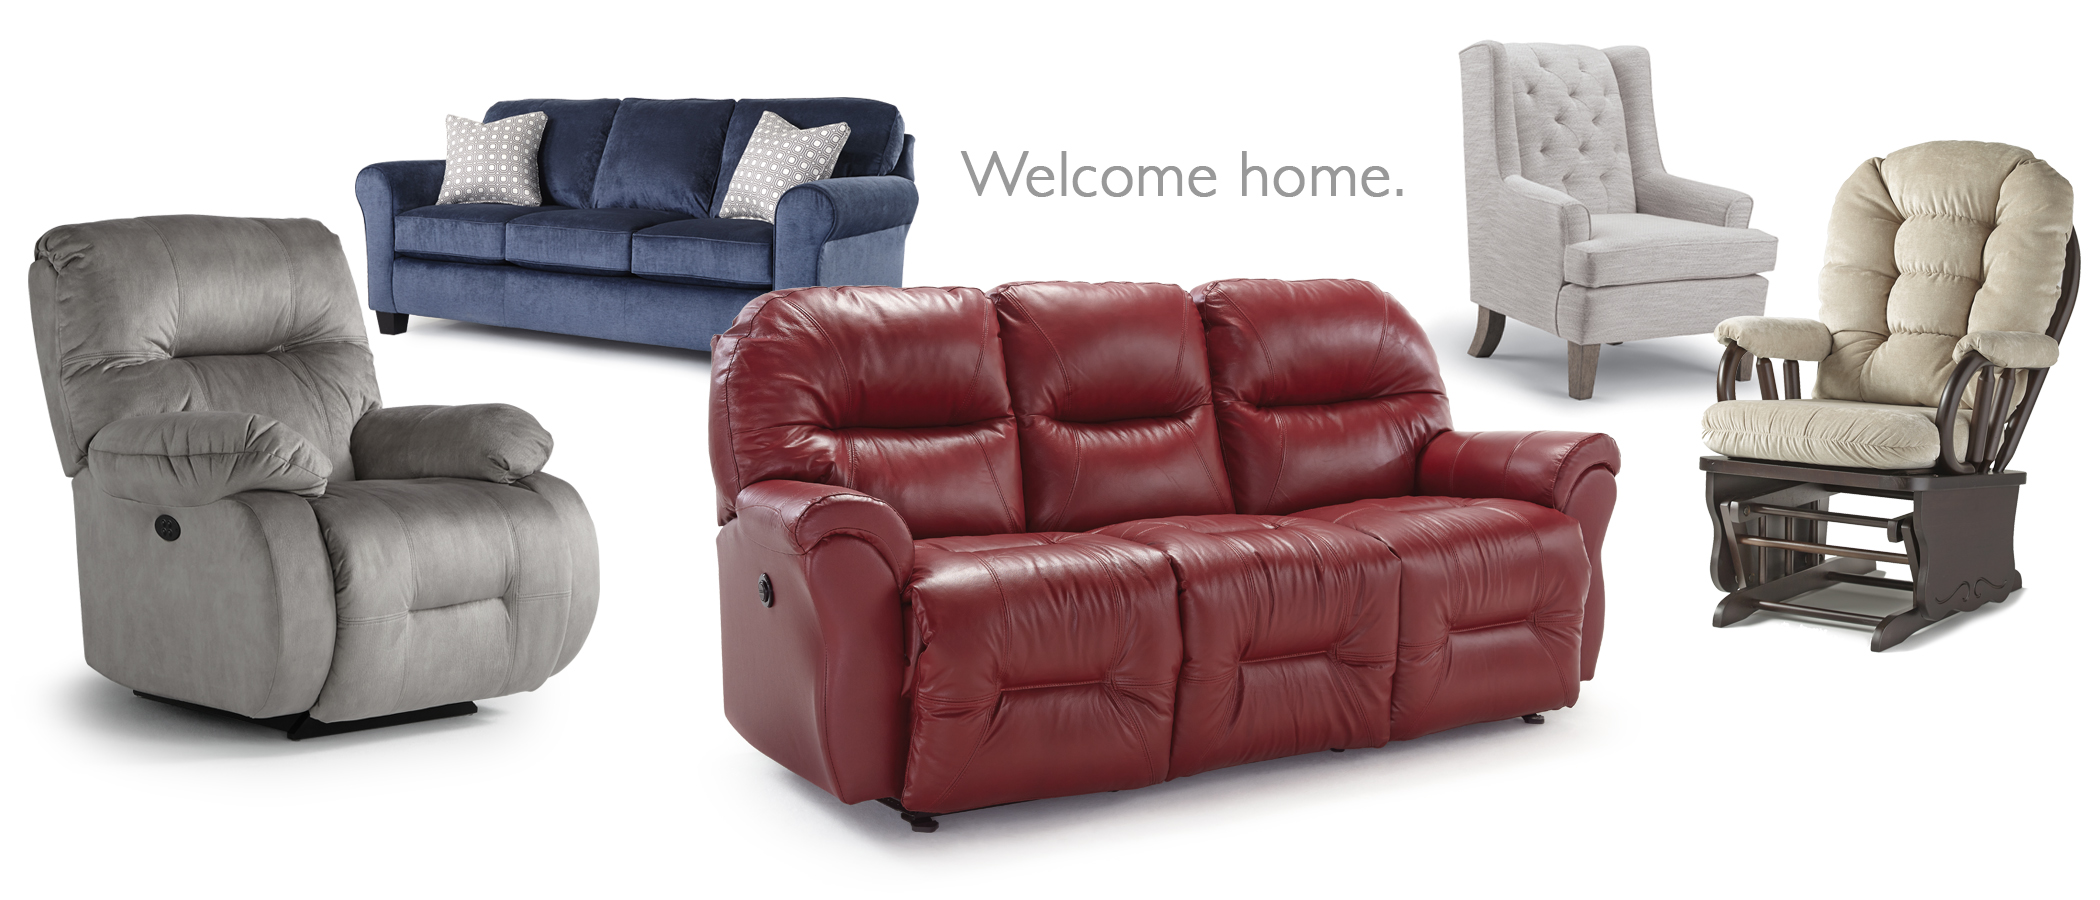 RECLINERS  sc 1 th 135 & Home | Best Home Furnishings islam-shia.org